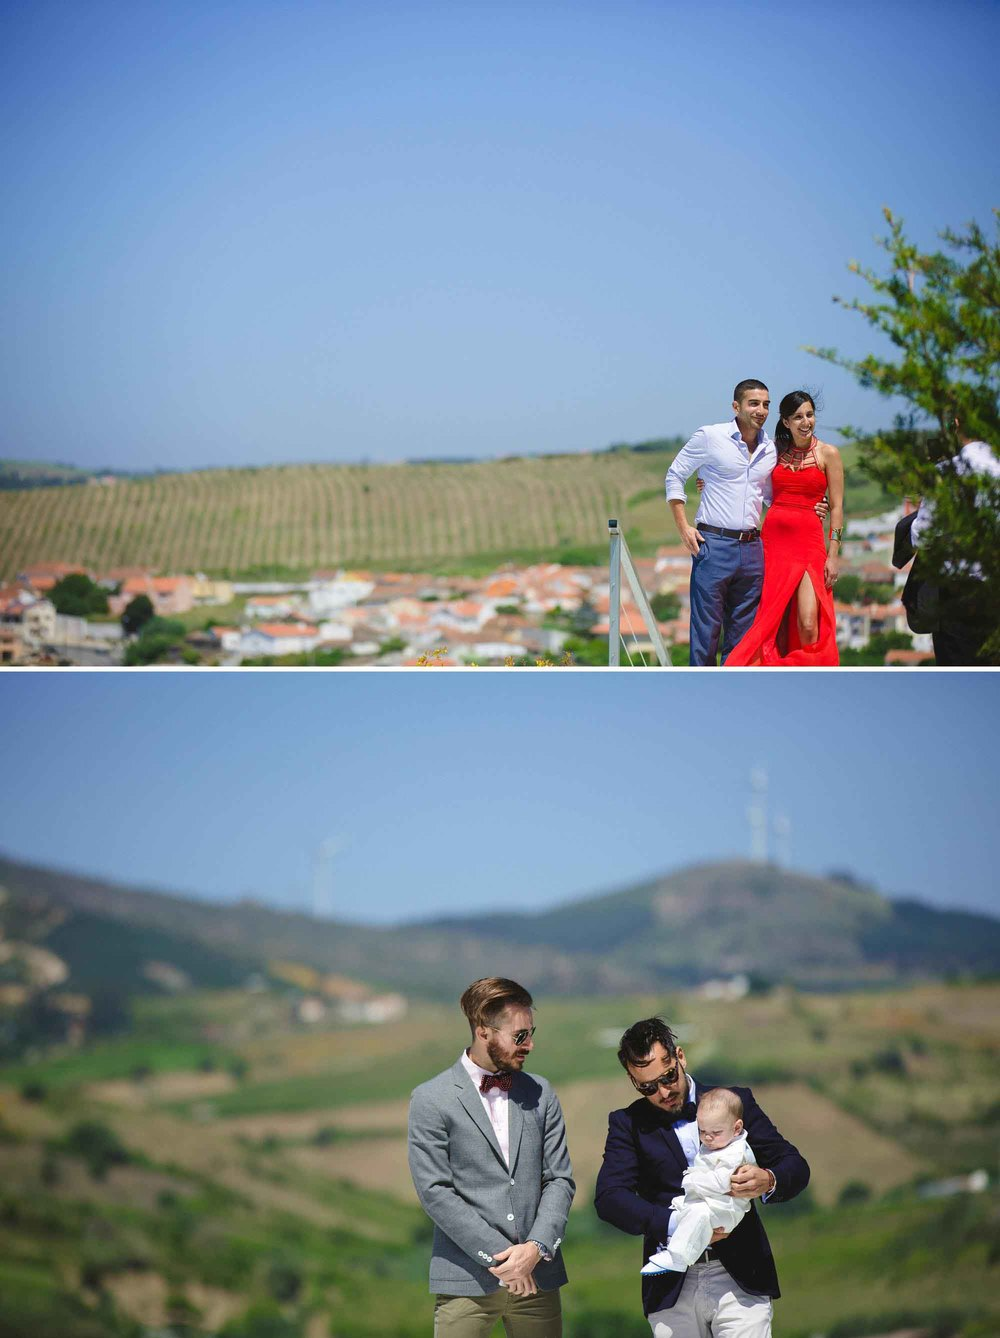 Portugal-Wedding-Photographer-43.jpg